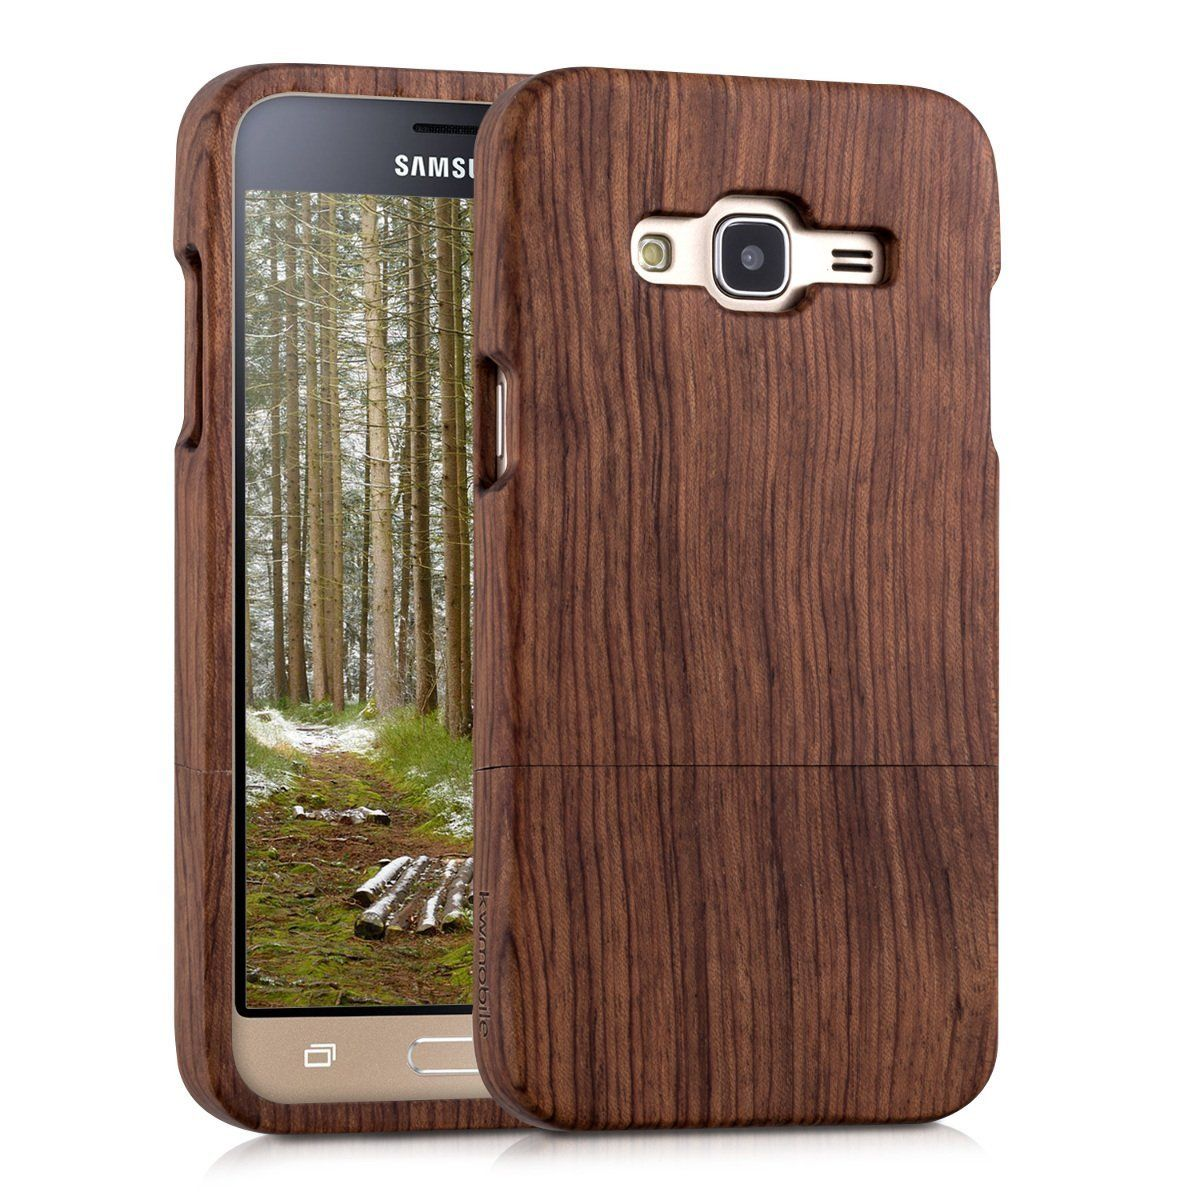 separation shoes 2b2c7 74031 Amazon.com: kwmobile Natural wood case for the Samsung Galaxy J3 ...